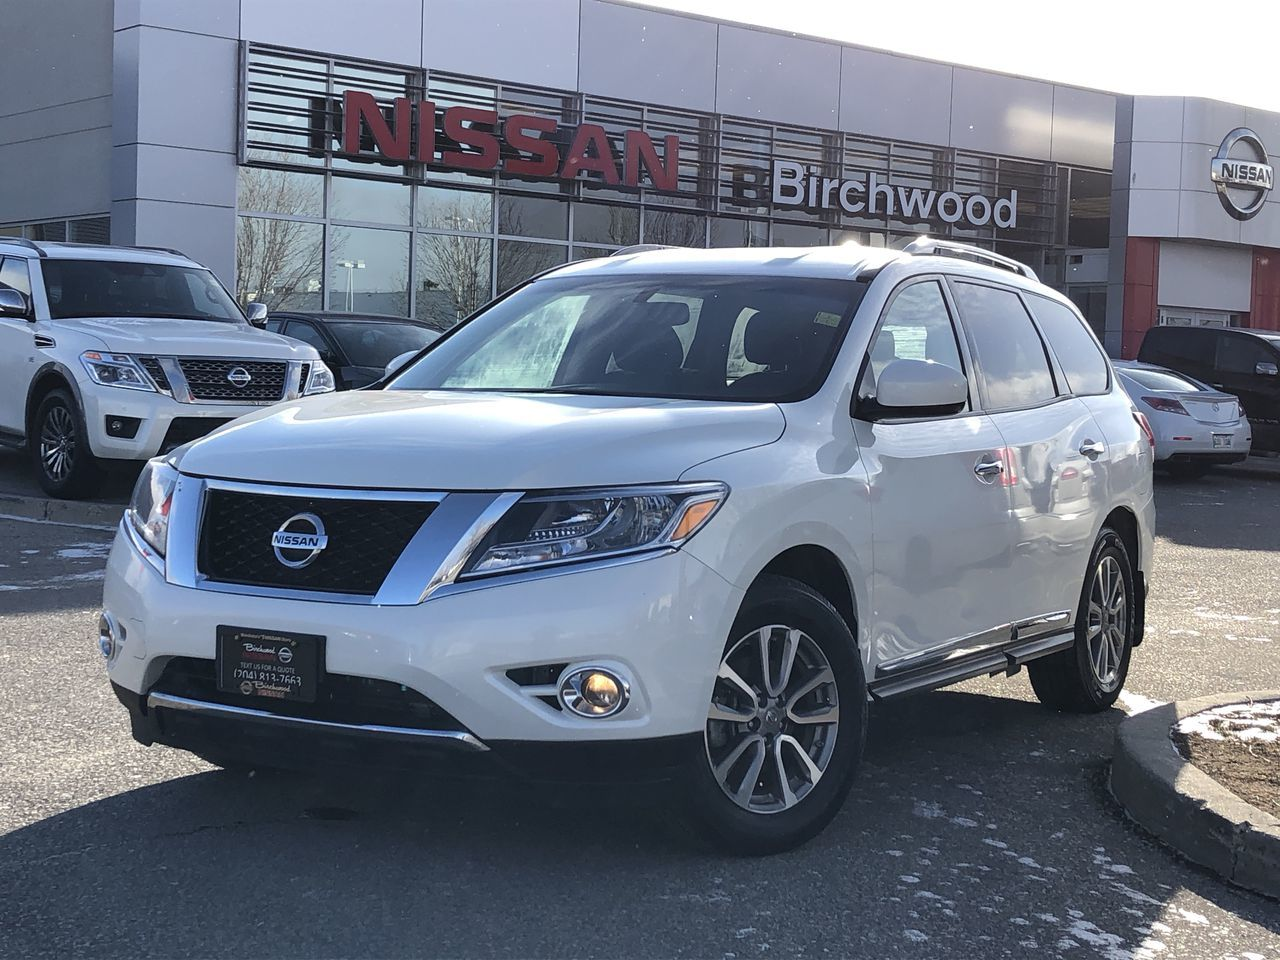 2015 Nissan Pathfinder SL Bought And Serviced At Birchwood Nissan! SUV